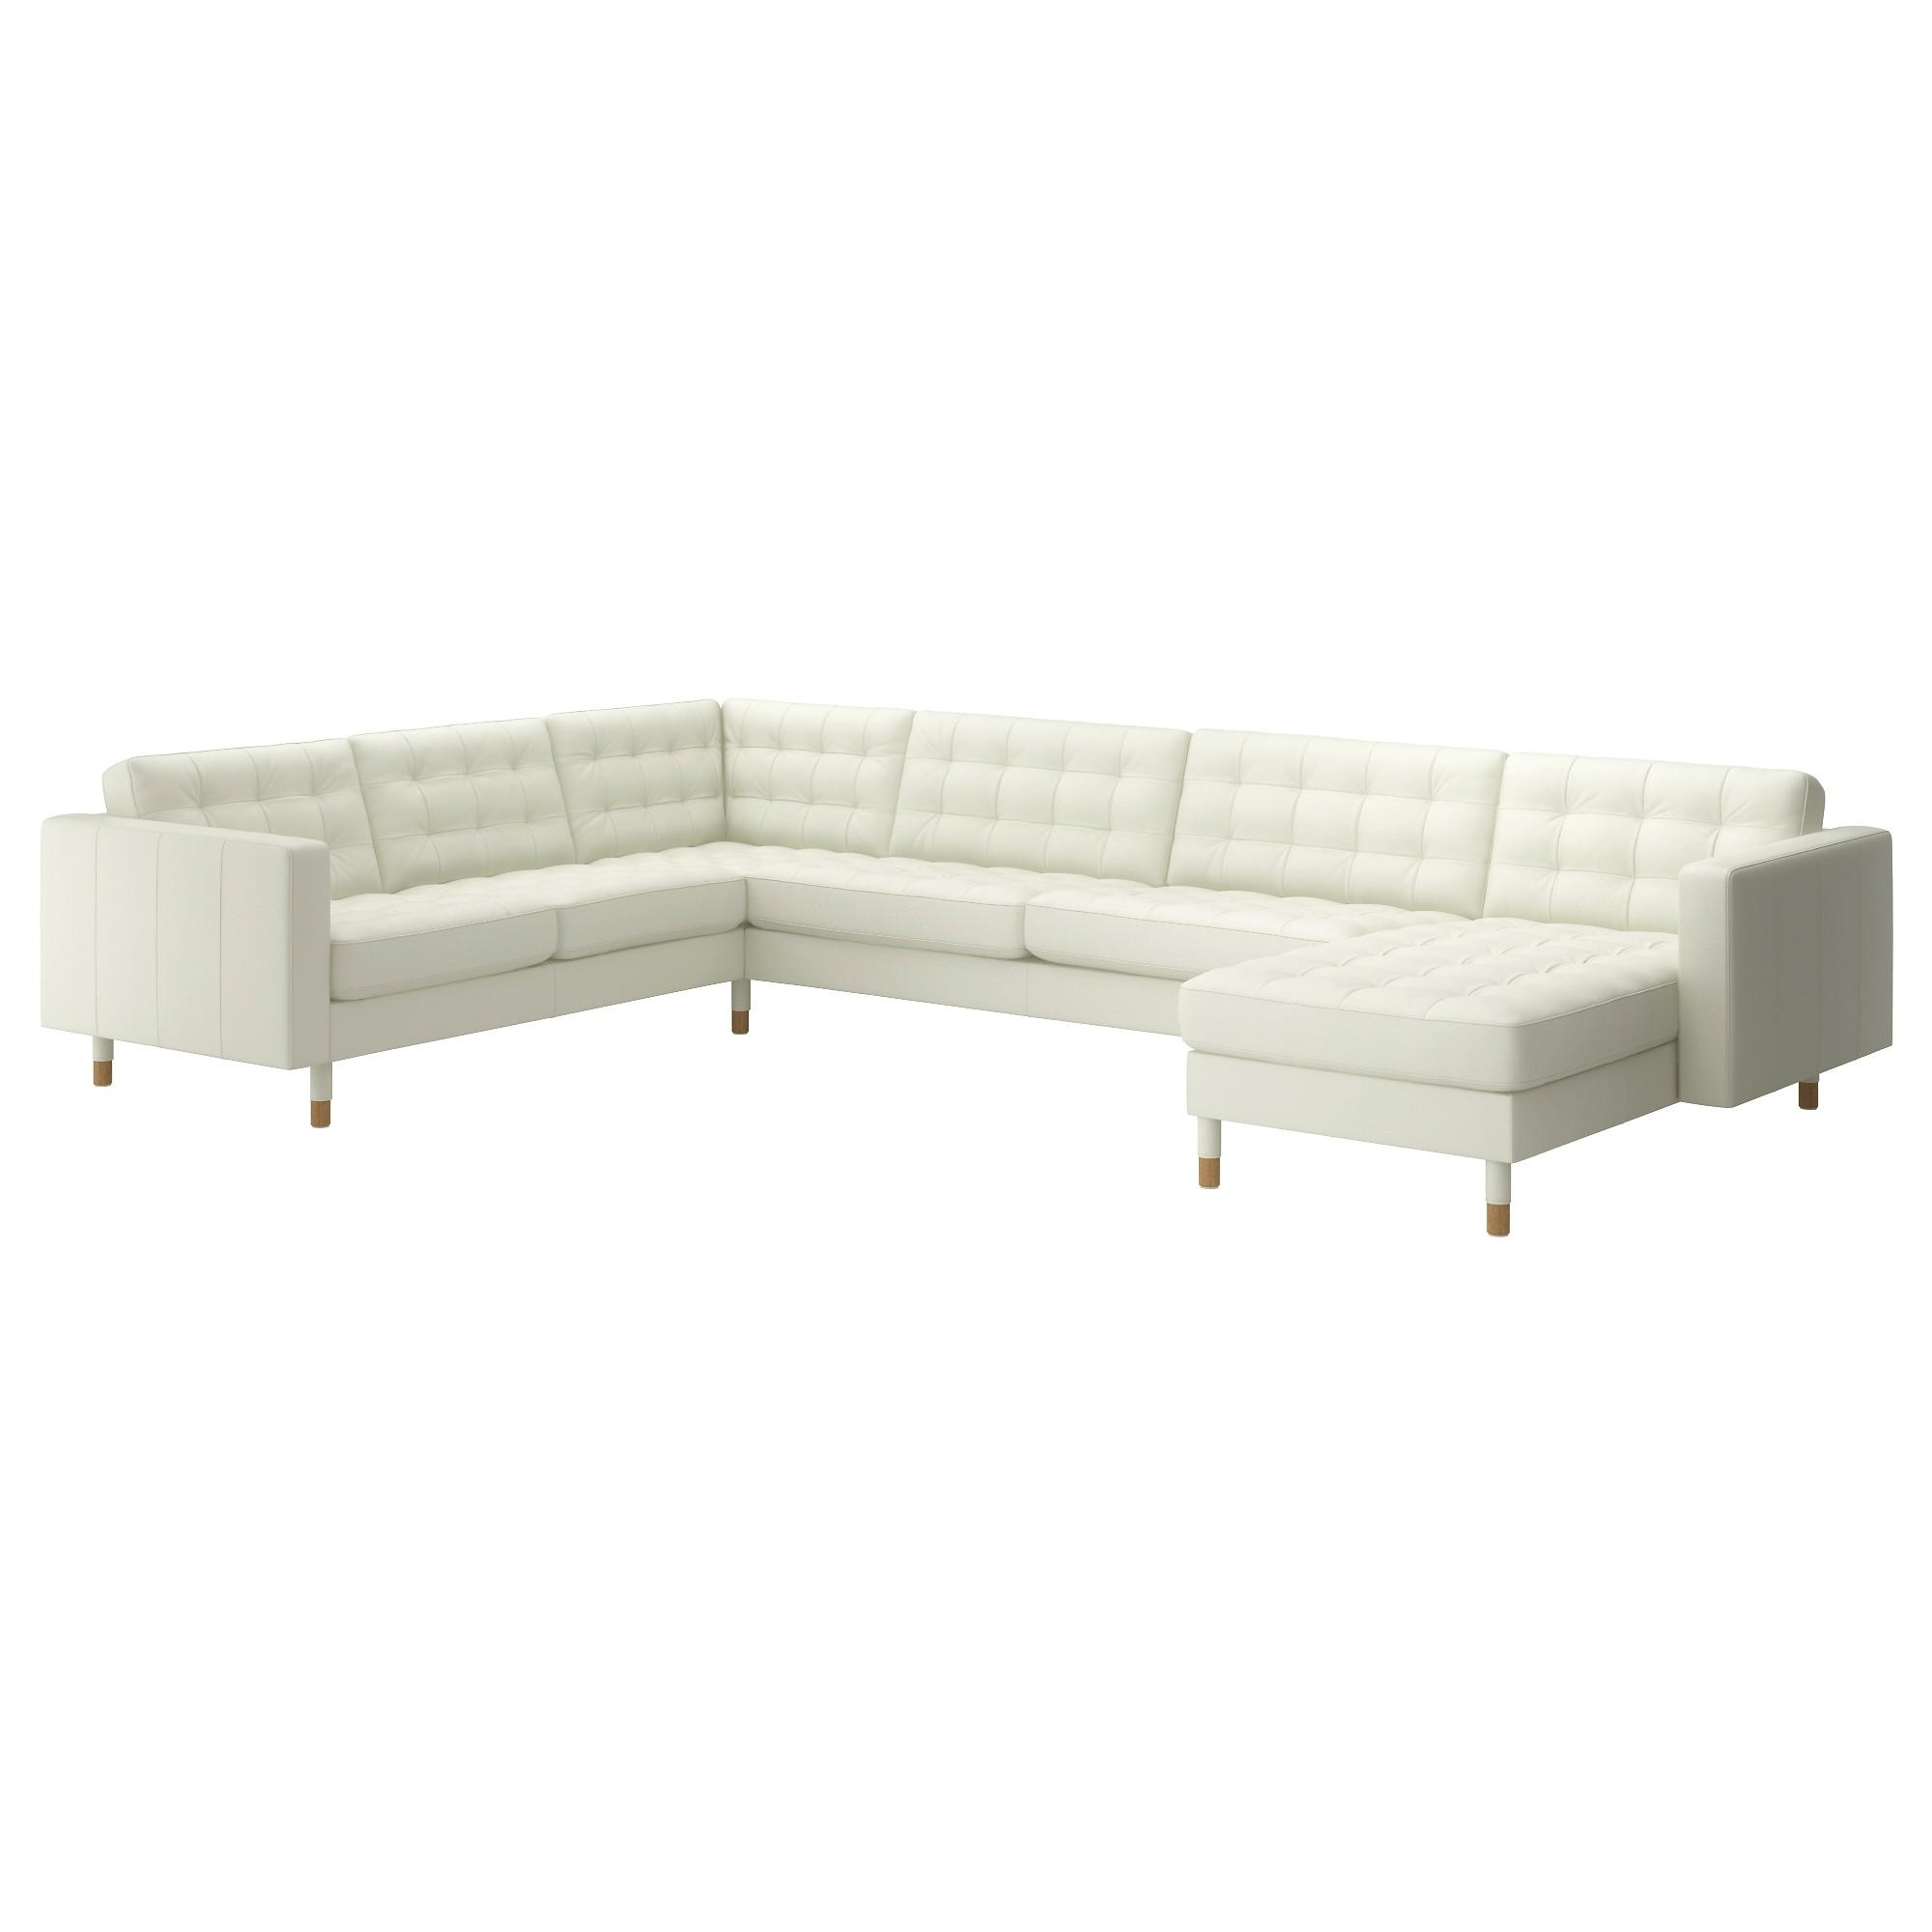 Sectional Sofas & Couches – Ikea Pertaining To Sleeper Sofa Sectional Ikea (Image 14 of 20)